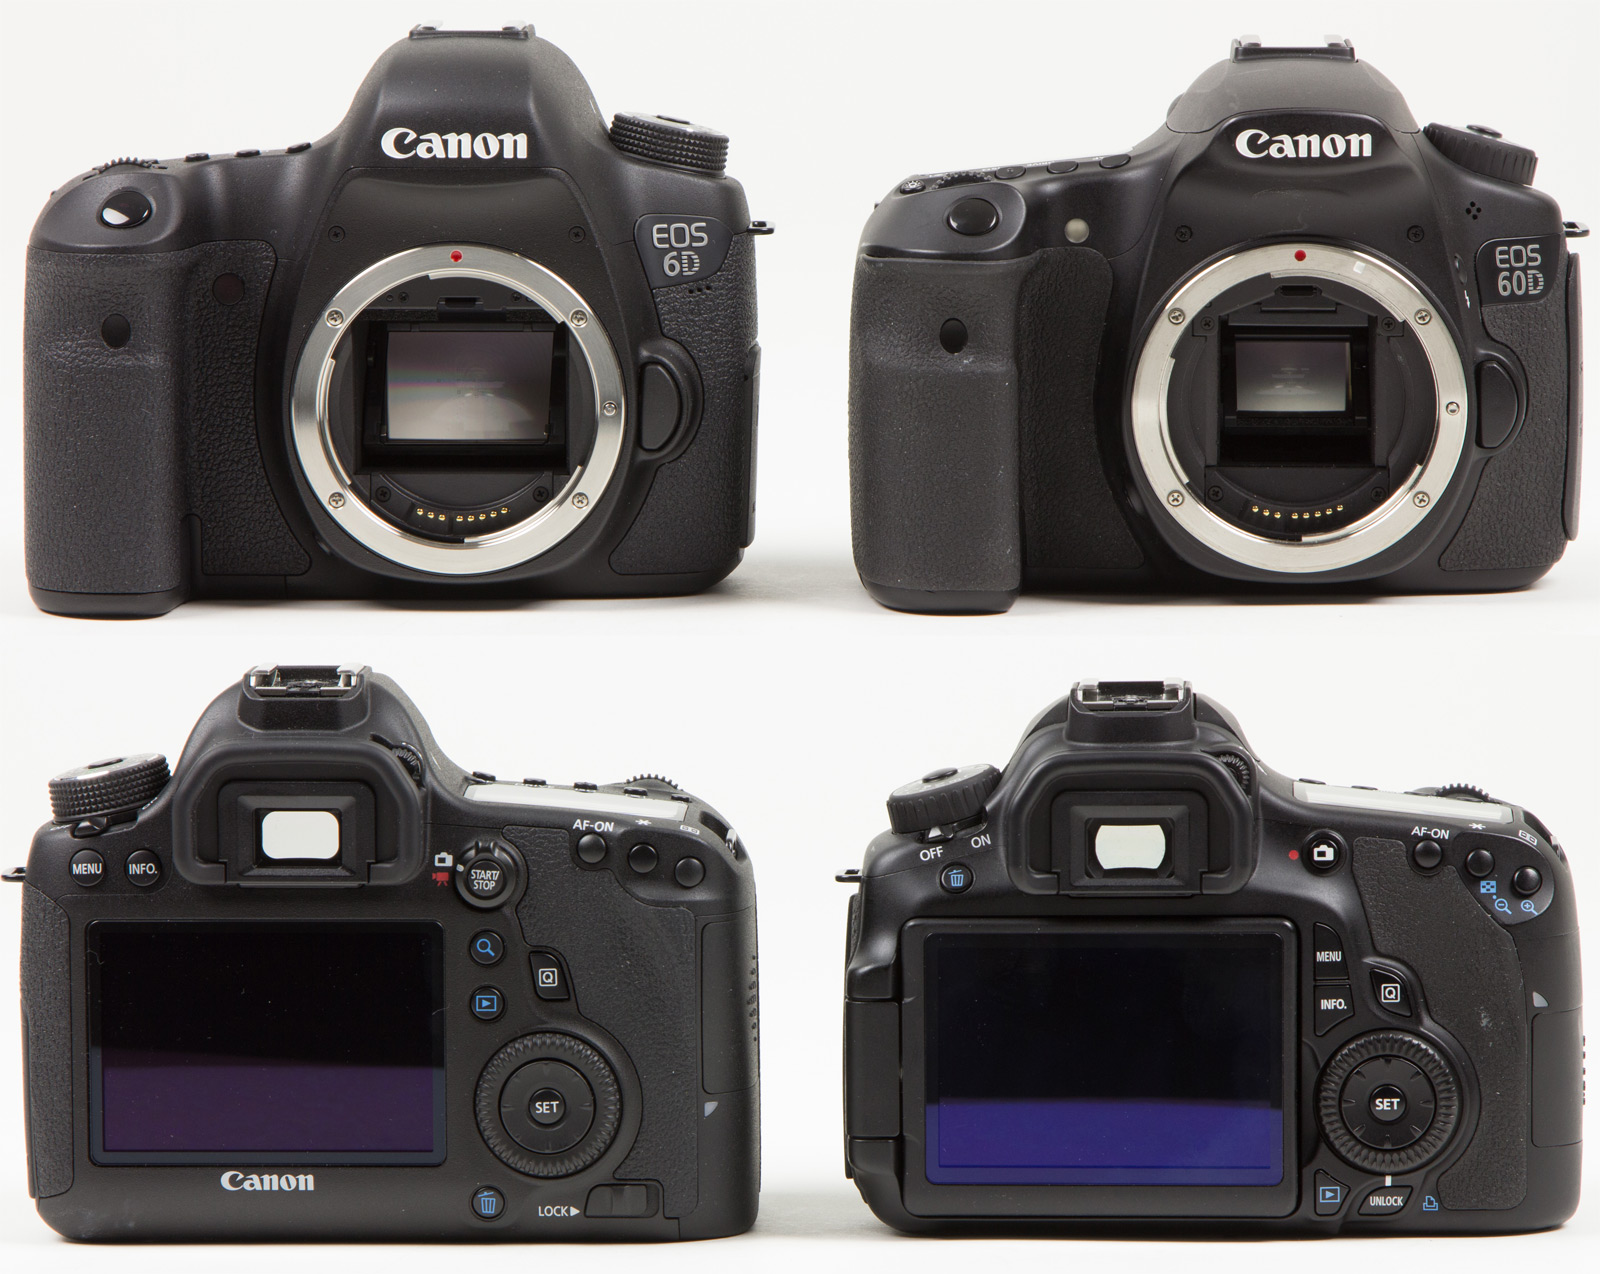 eos 6d canon full frame voor weinig body lekker in de hand review tweakers. Black Bedroom Furniture Sets. Home Design Ideas